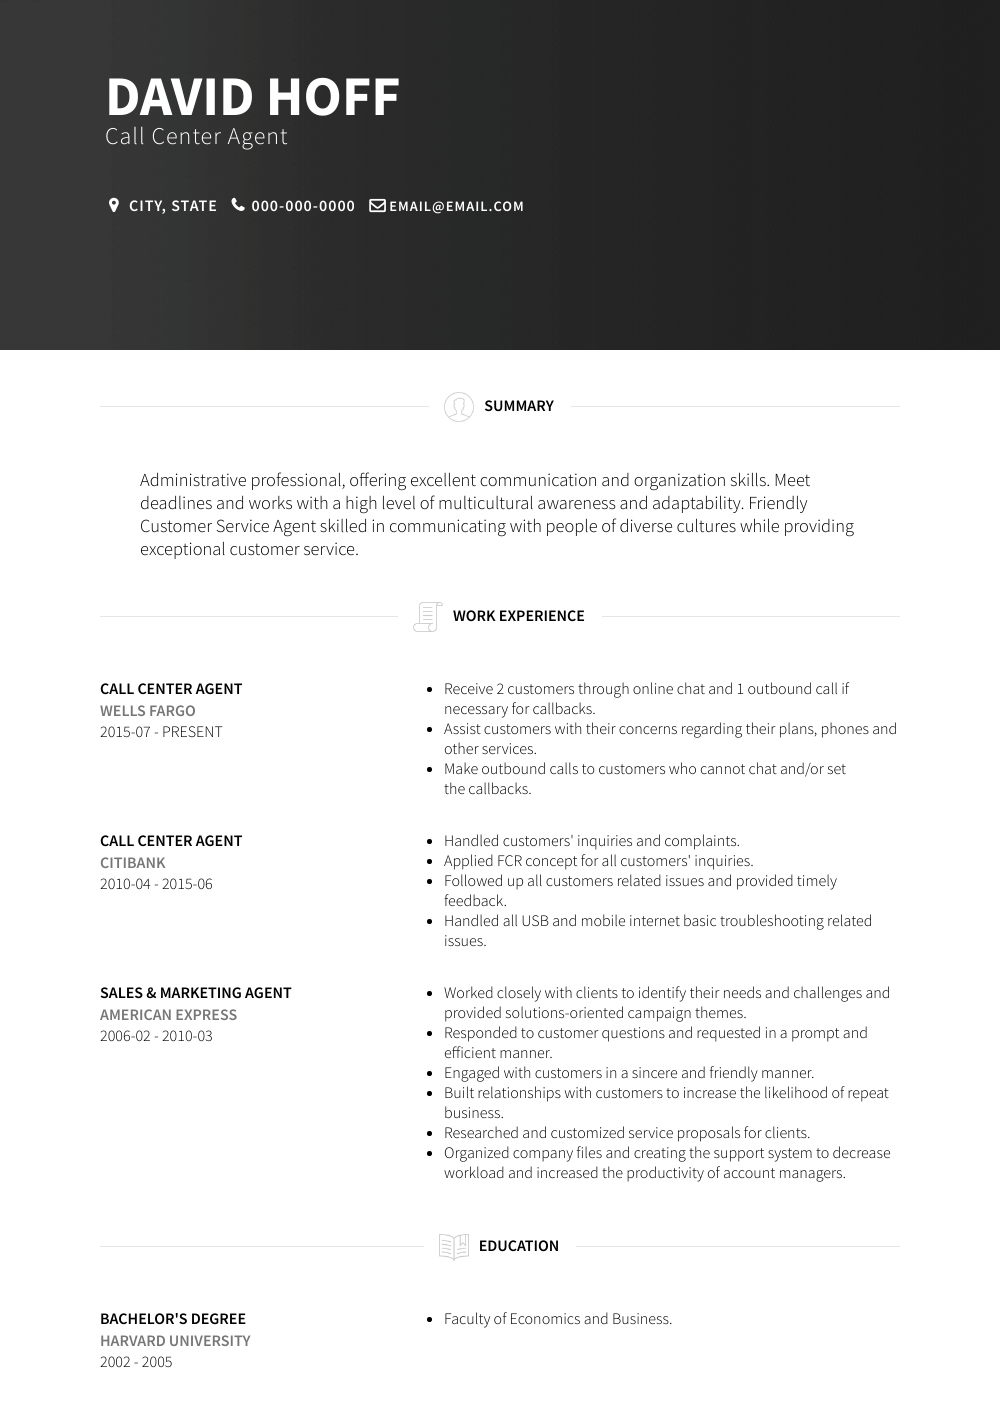 Call Center Agent  Resume Samples and Templates   VisualCV